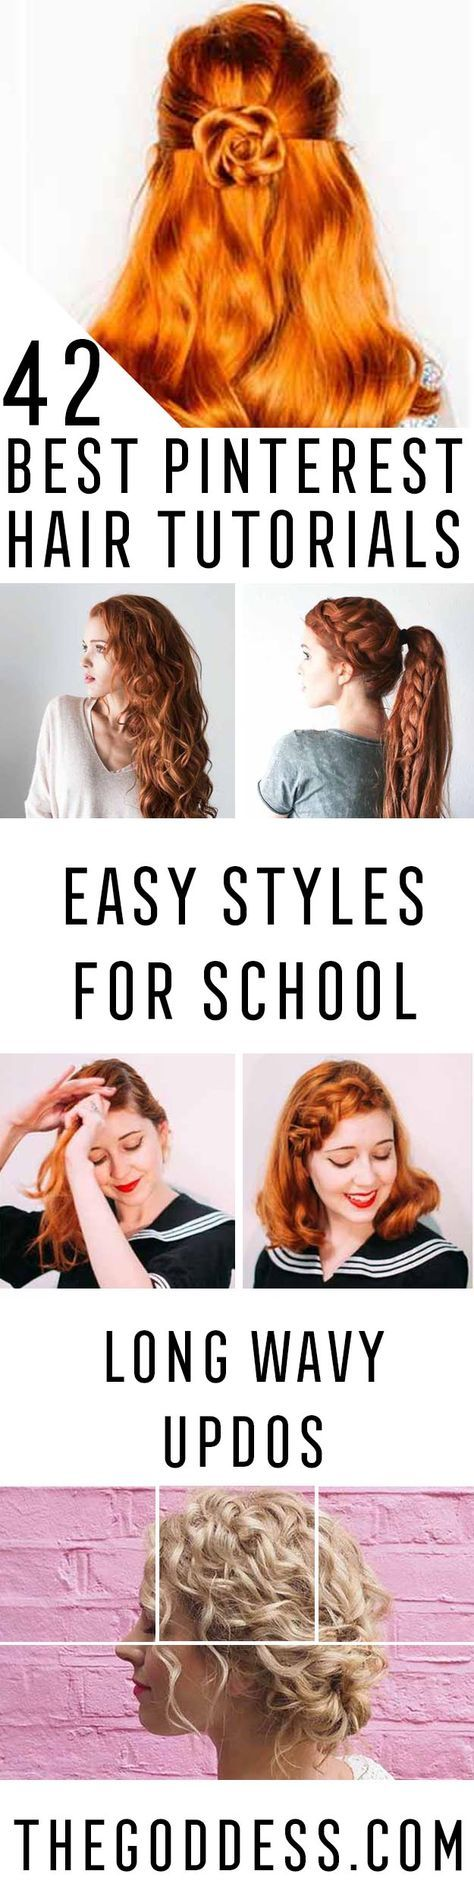 Best Pinterest Hair Tutorials - Check Out These Super Cute And Super Simple Hairstyles From The Best Pinterest Hair Tutorials Including Styles Like Messy Buns And Half Up Half Down Hairdos. Dutch Braids Are Super Hot Right Now Too. These Are The Best Hairstyle Tutorials Ideas On Pinterest Right Now. Easy Hair Up And Hair Down Ideas For Short Hair, Long Hair, and Medium Length Hair. Hair Tutorials For Braids, For Curls, And Step By Step Tutorials For Prom, A Wedding, Or Homecoming And Back To…